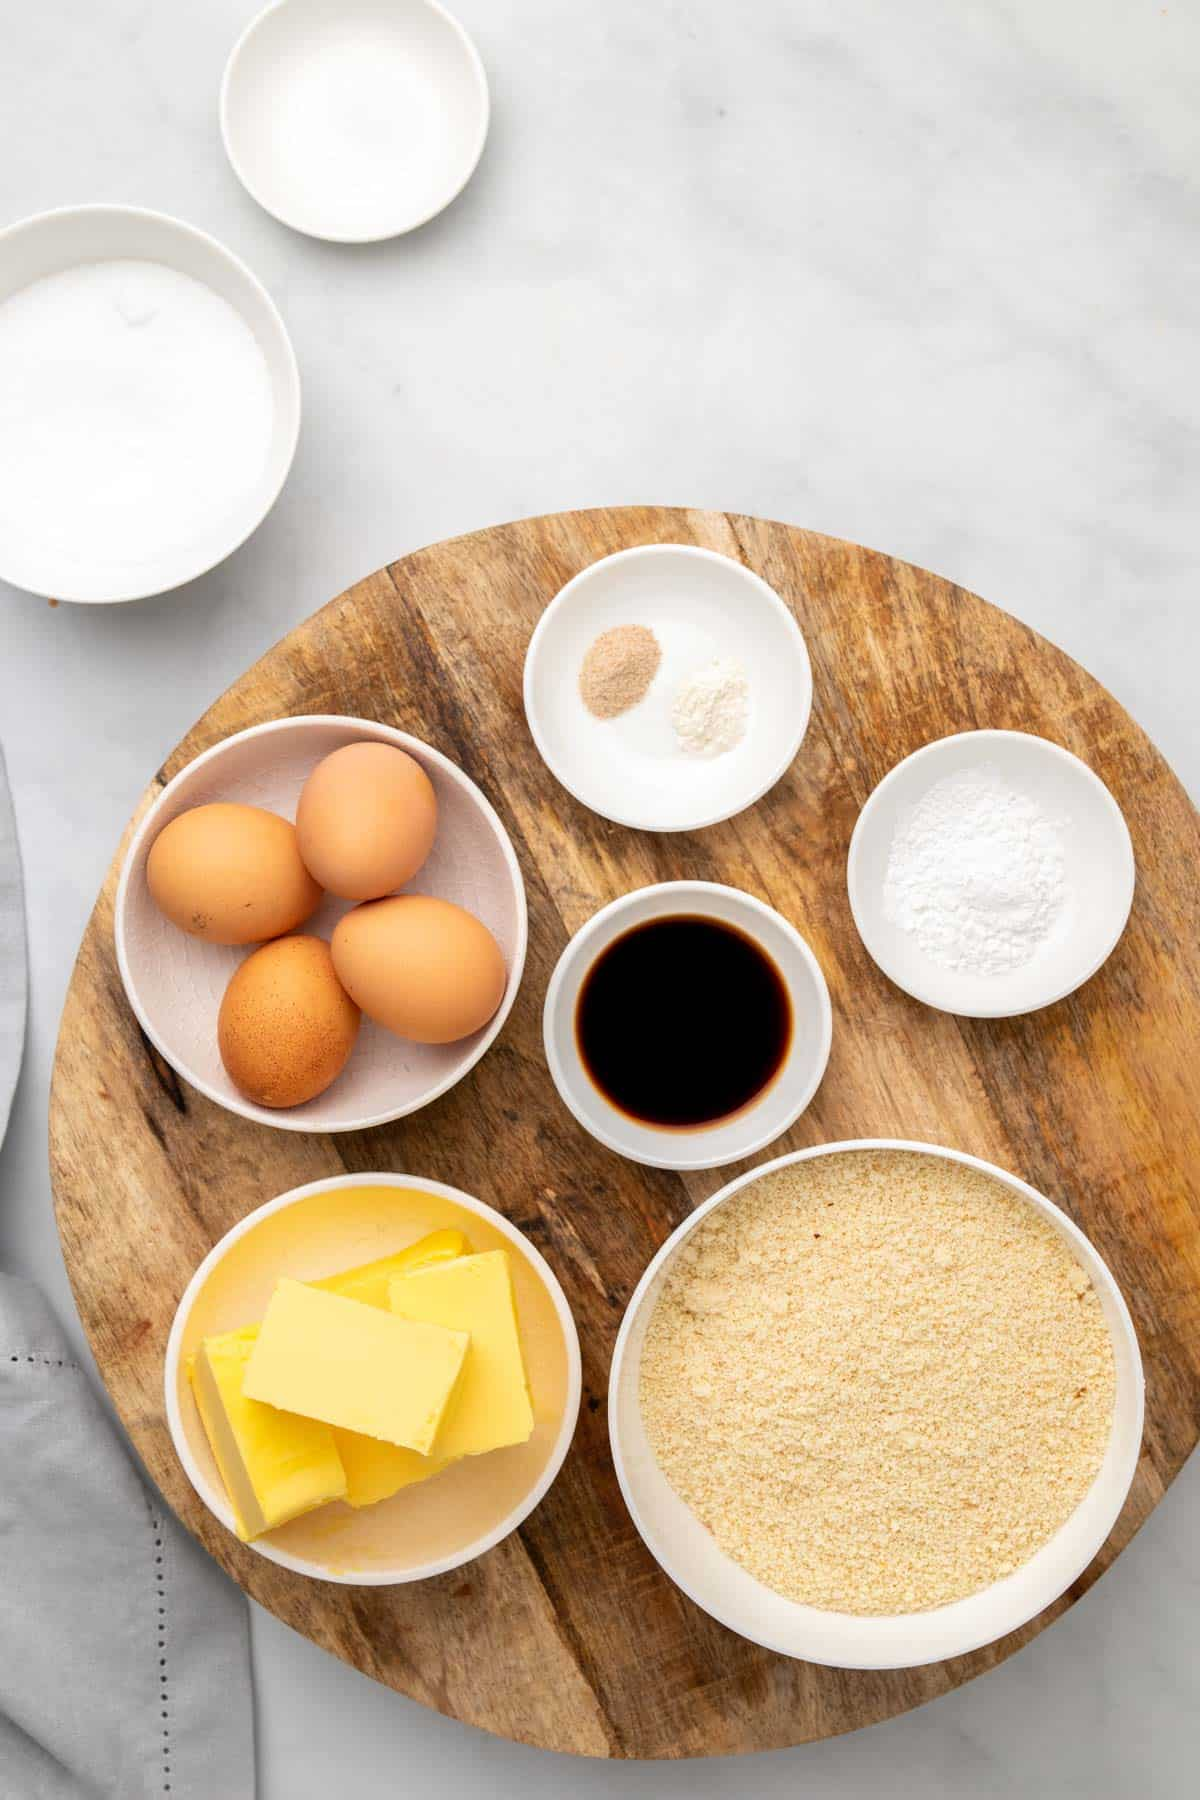 Pound cake ingredients in separate ramekins as seen from above